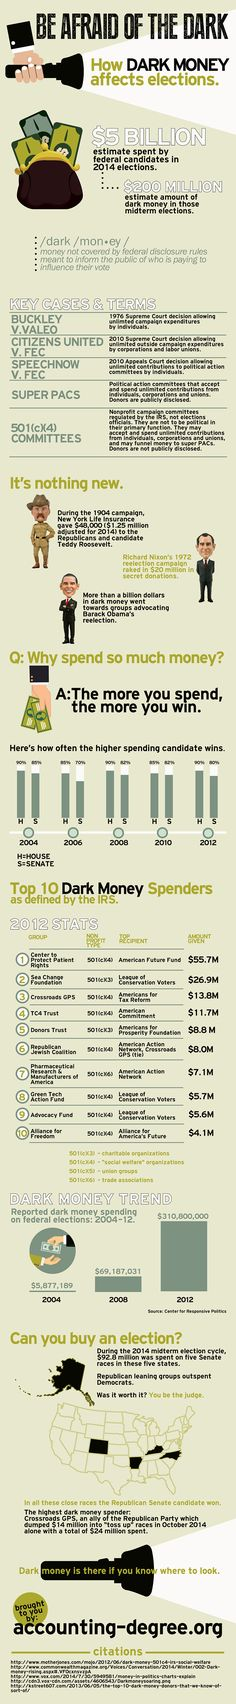 Be Afraid of the Dark: How Dark Money Affects Elections